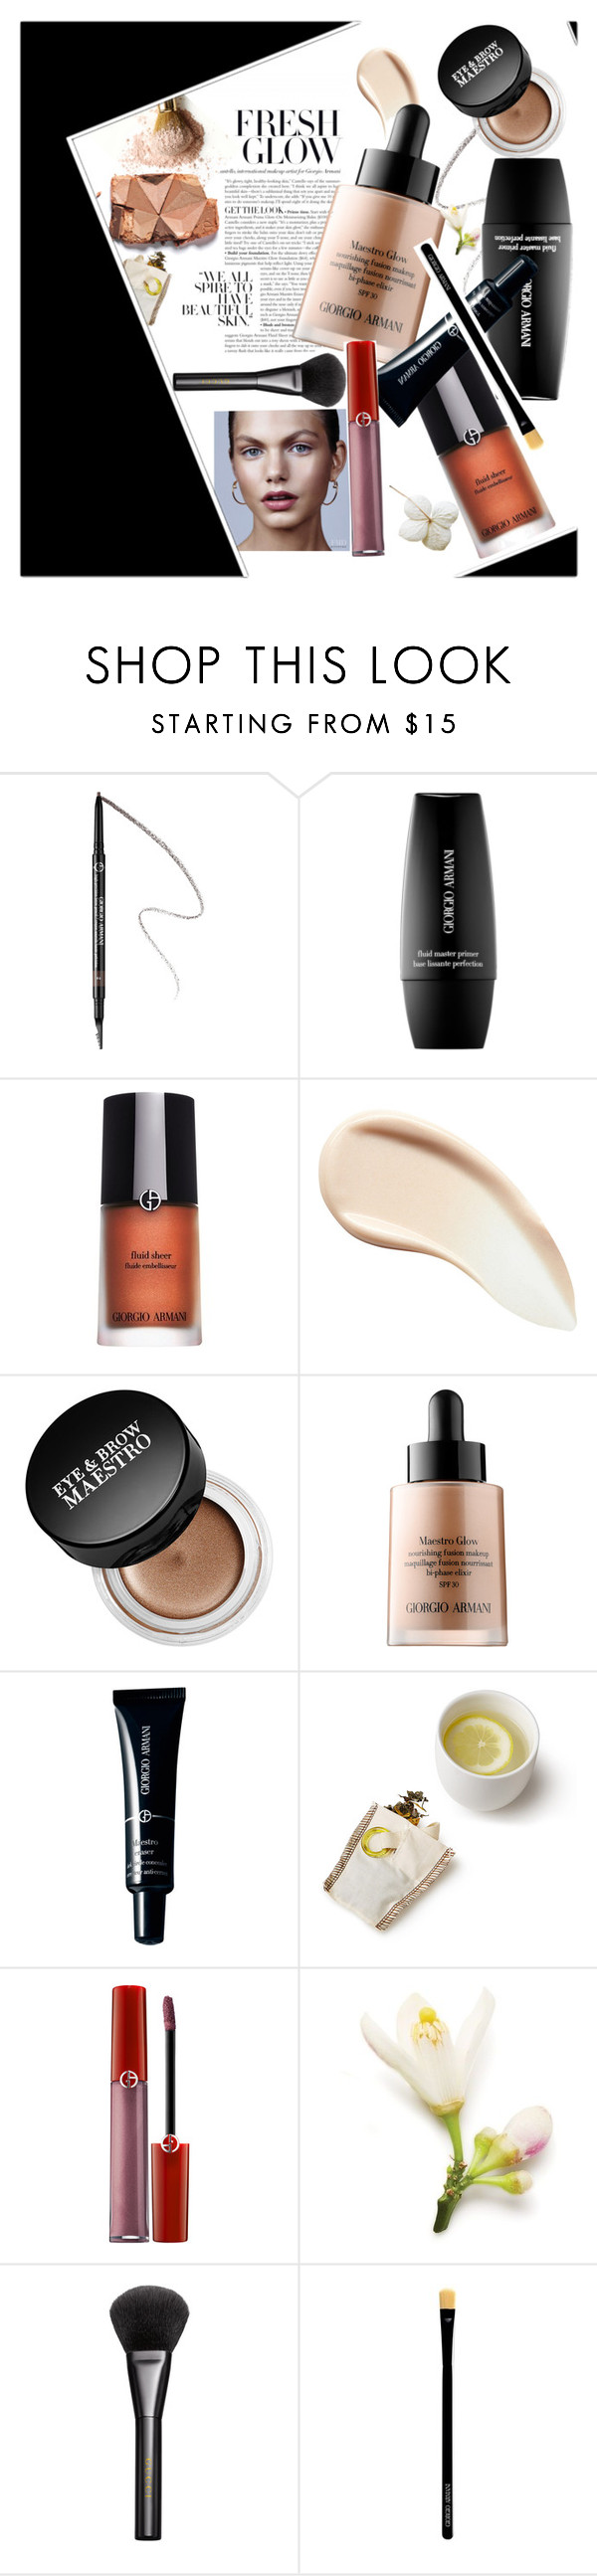 """""""FRESH GLOW"""" by hopelovesfashion ❤ liked on Polyvore featuring beauty, Giorgio Armani, Burberry, Armani Beauty and Gucci"""